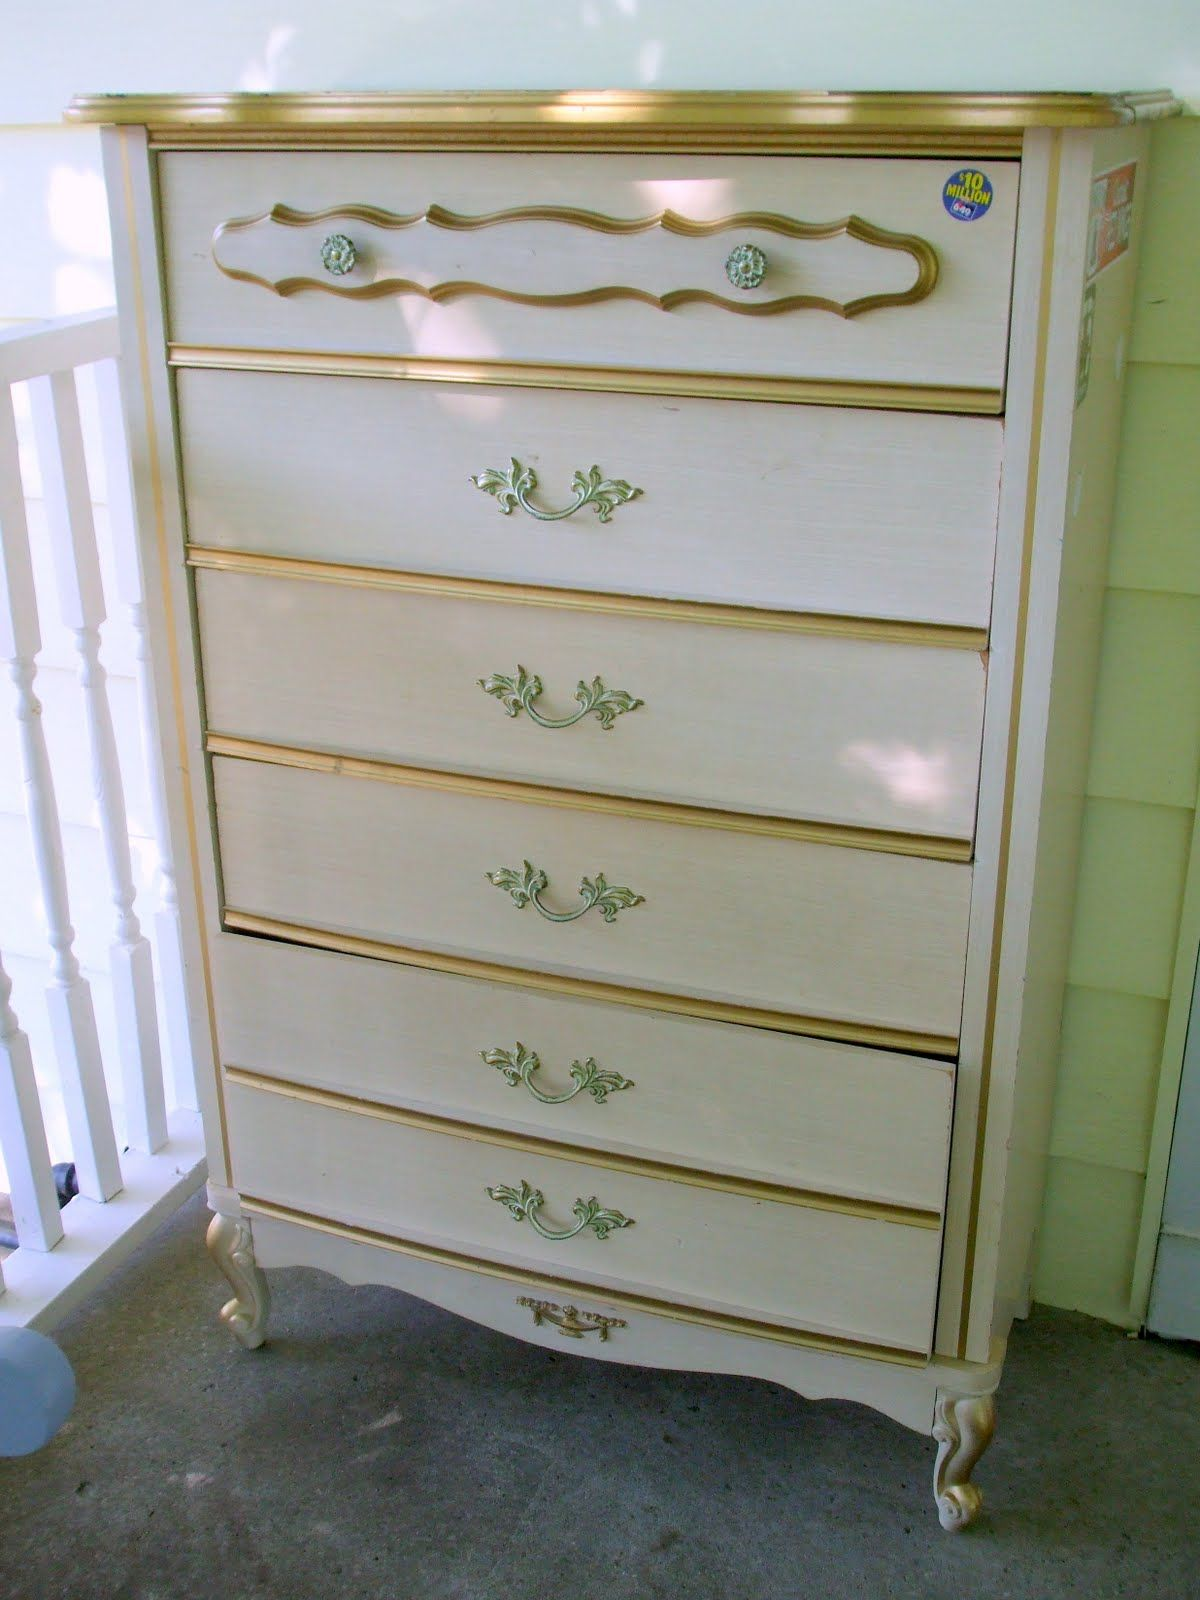 French Provincial 70s Furniture I Had This Bureau My Sister The Dresser W Mirror And We Both Canopy Beds